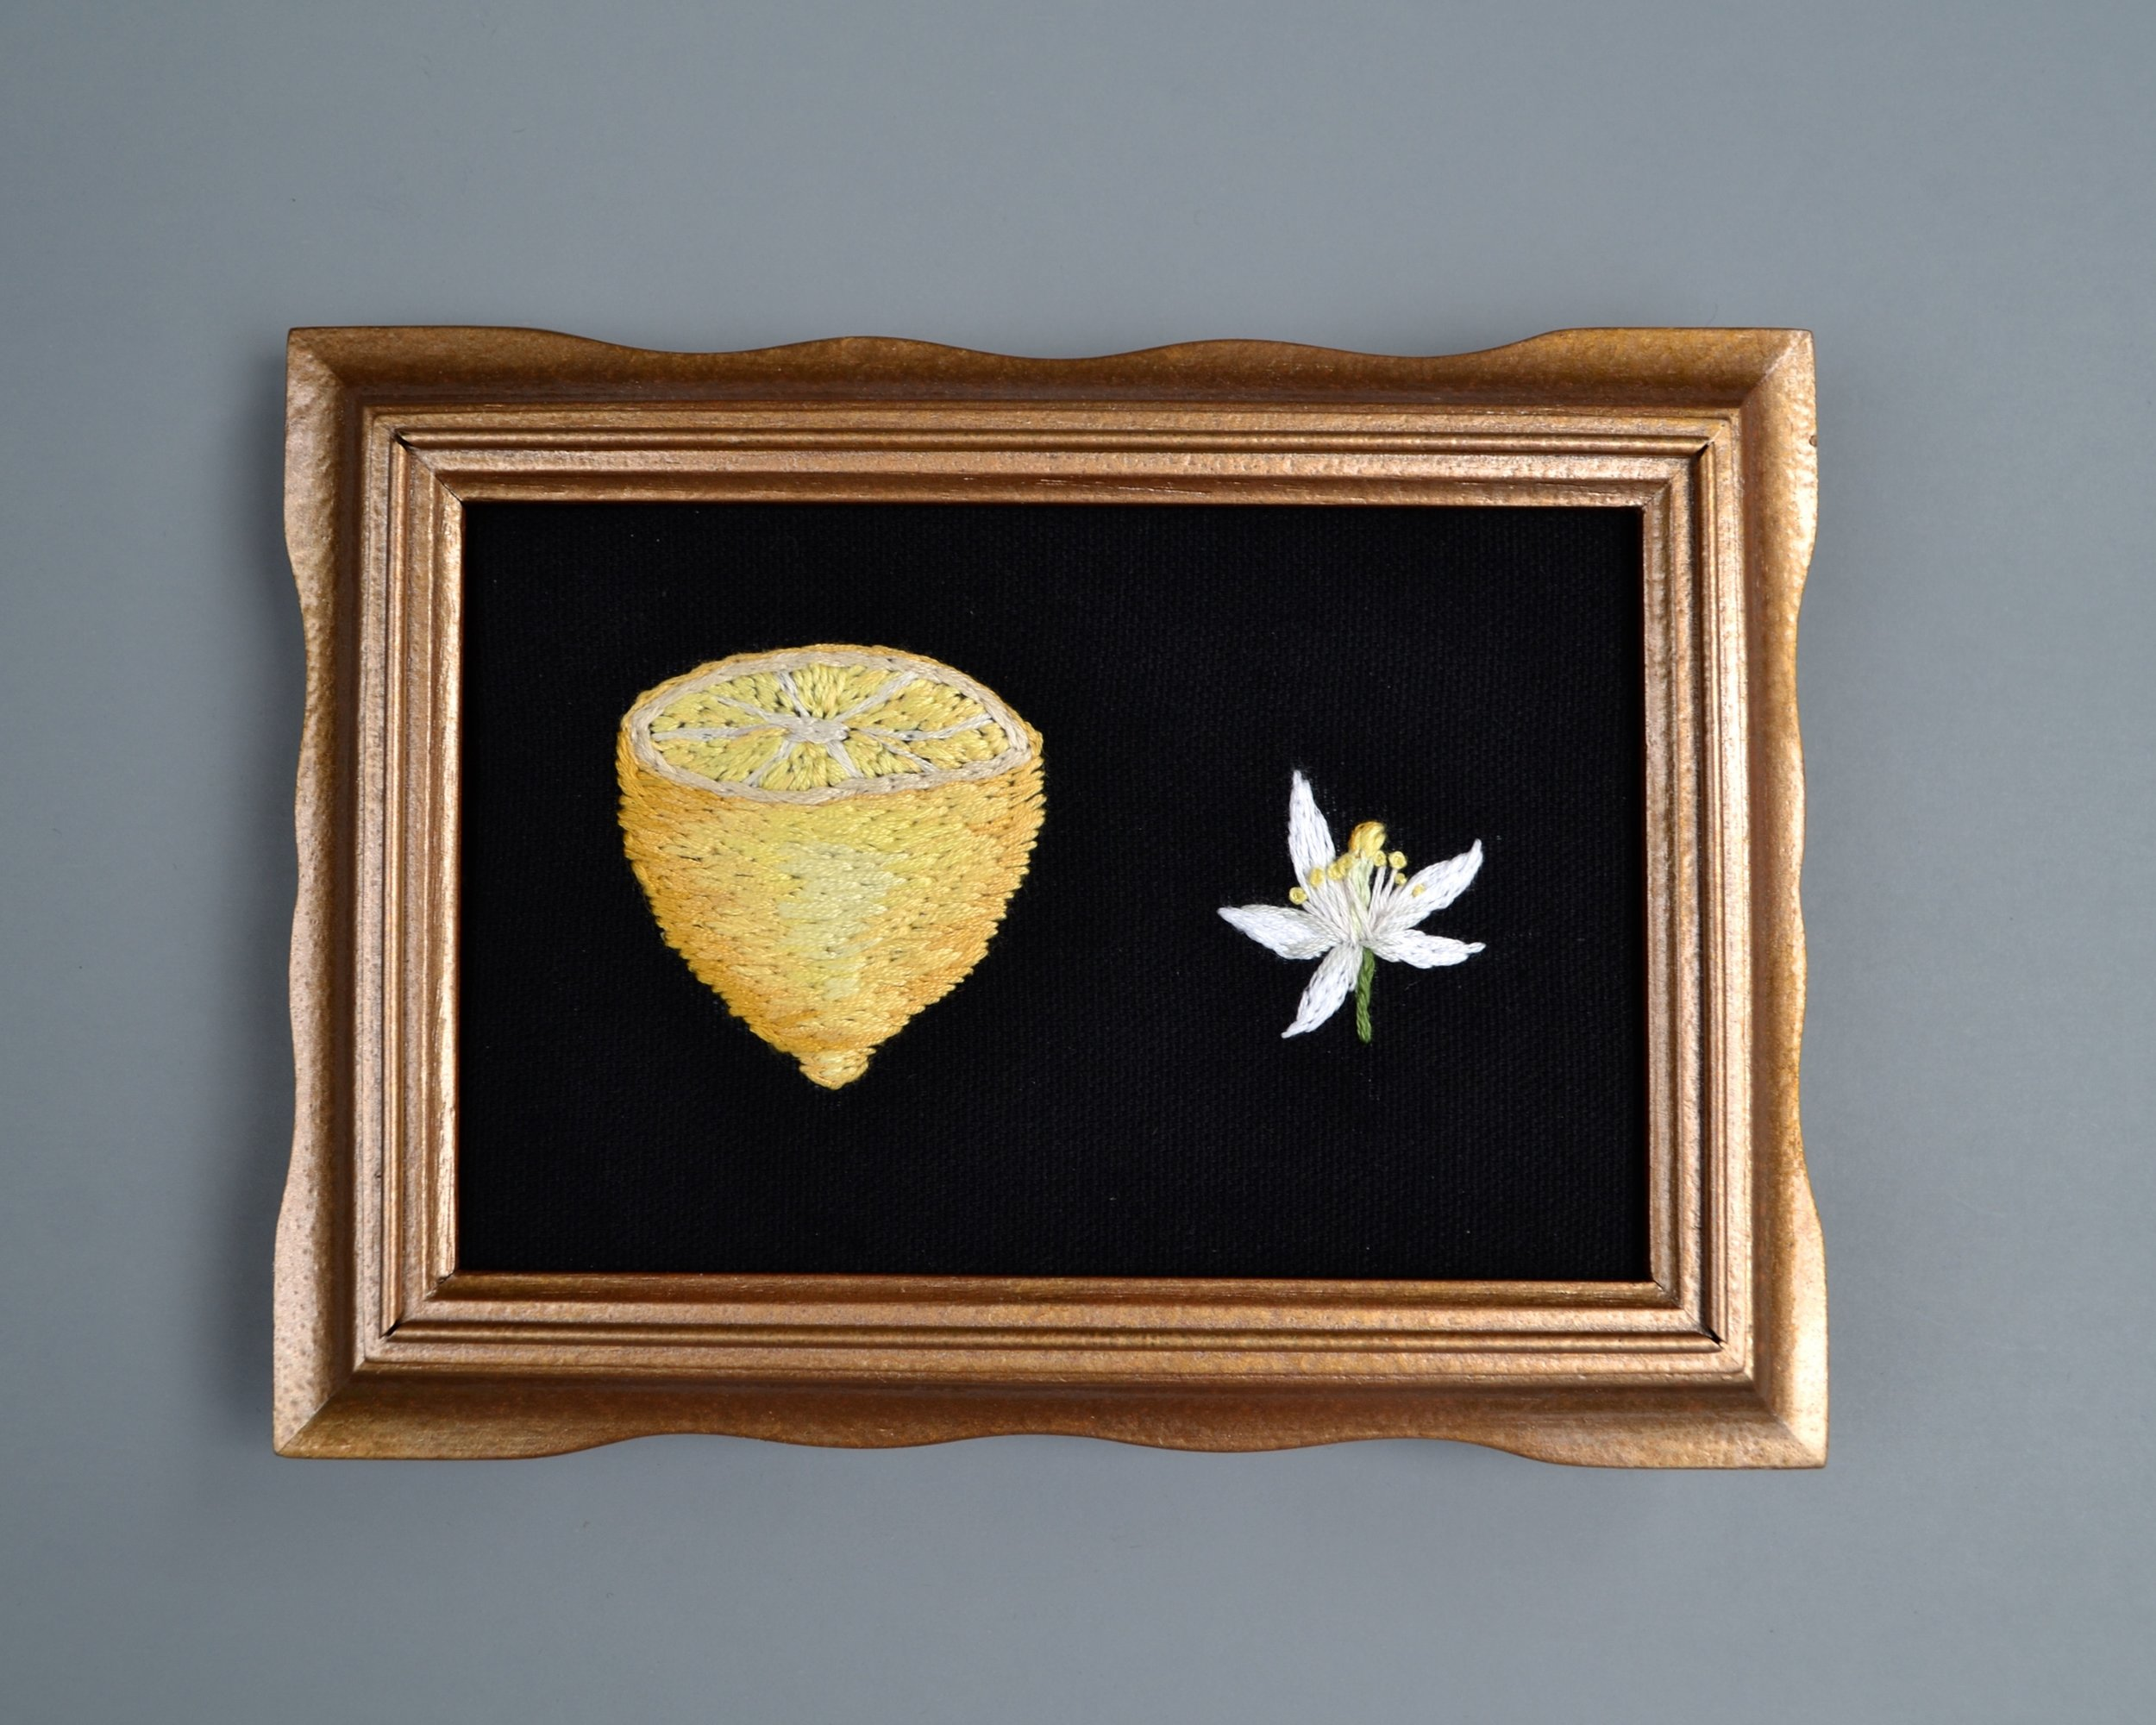 Lemon Fruit and Blossom, 2017